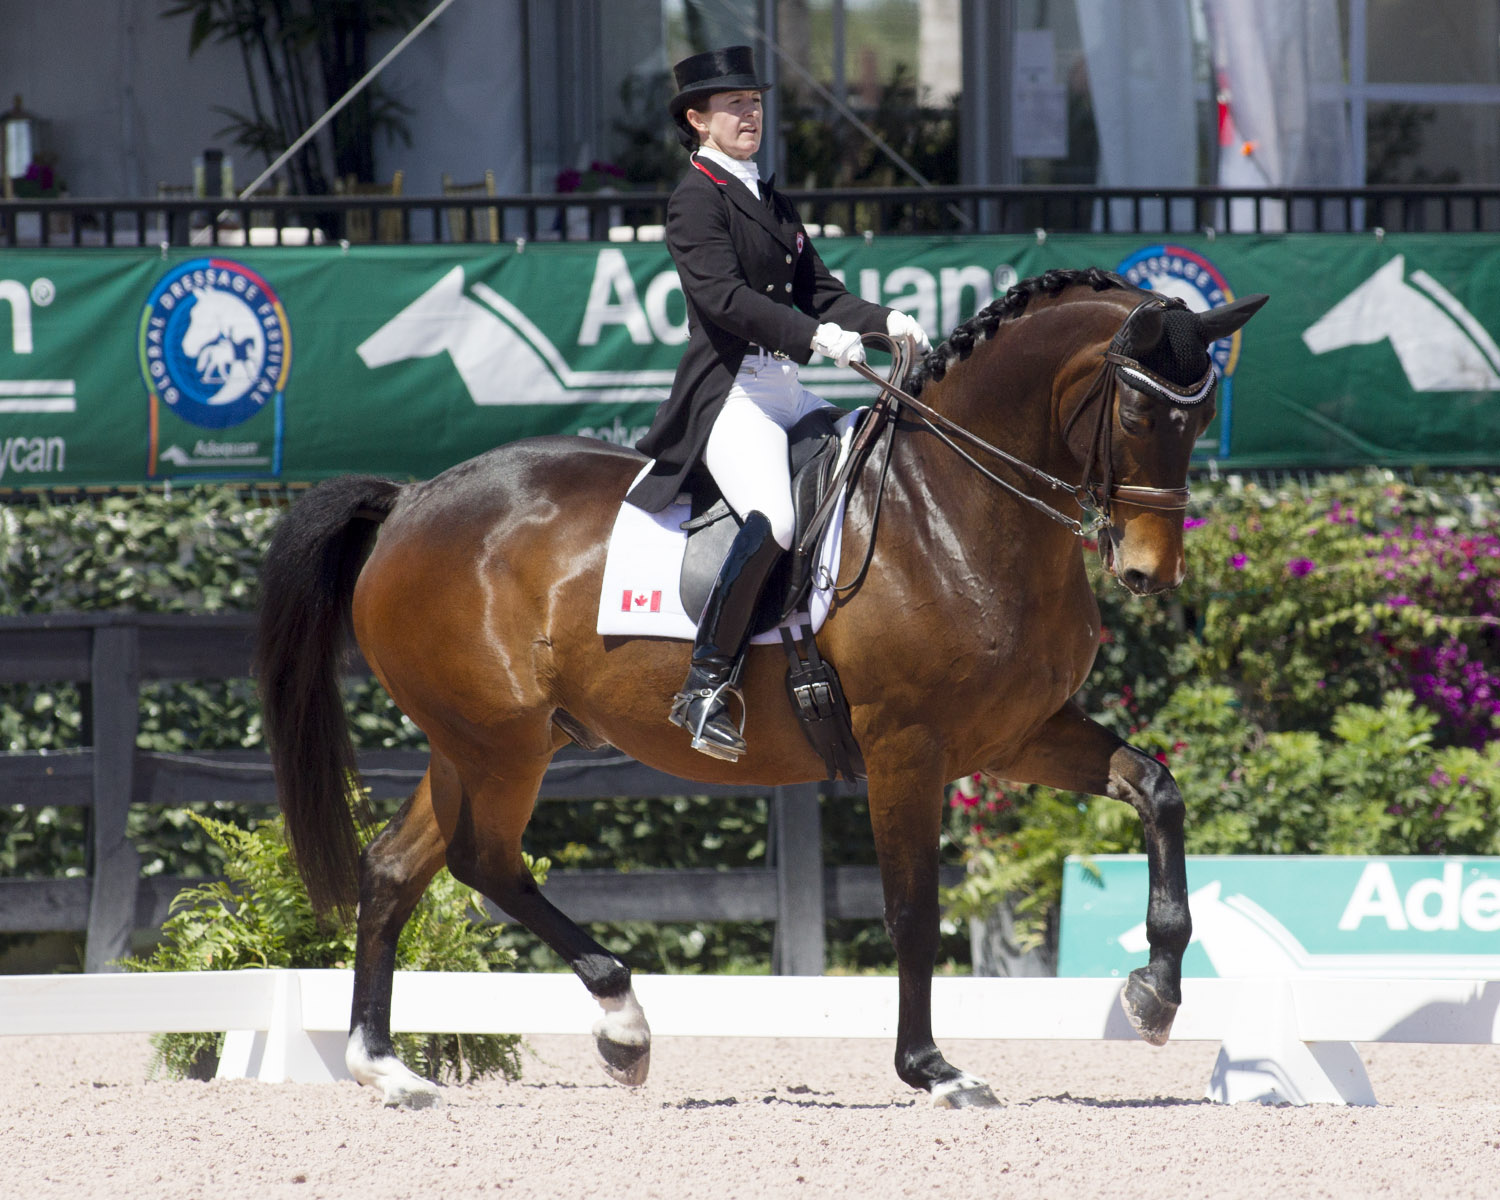 EC Exclusives - Anton Retirement - Belinda & Anton AGDF Action by Cealy Tetley.jpg